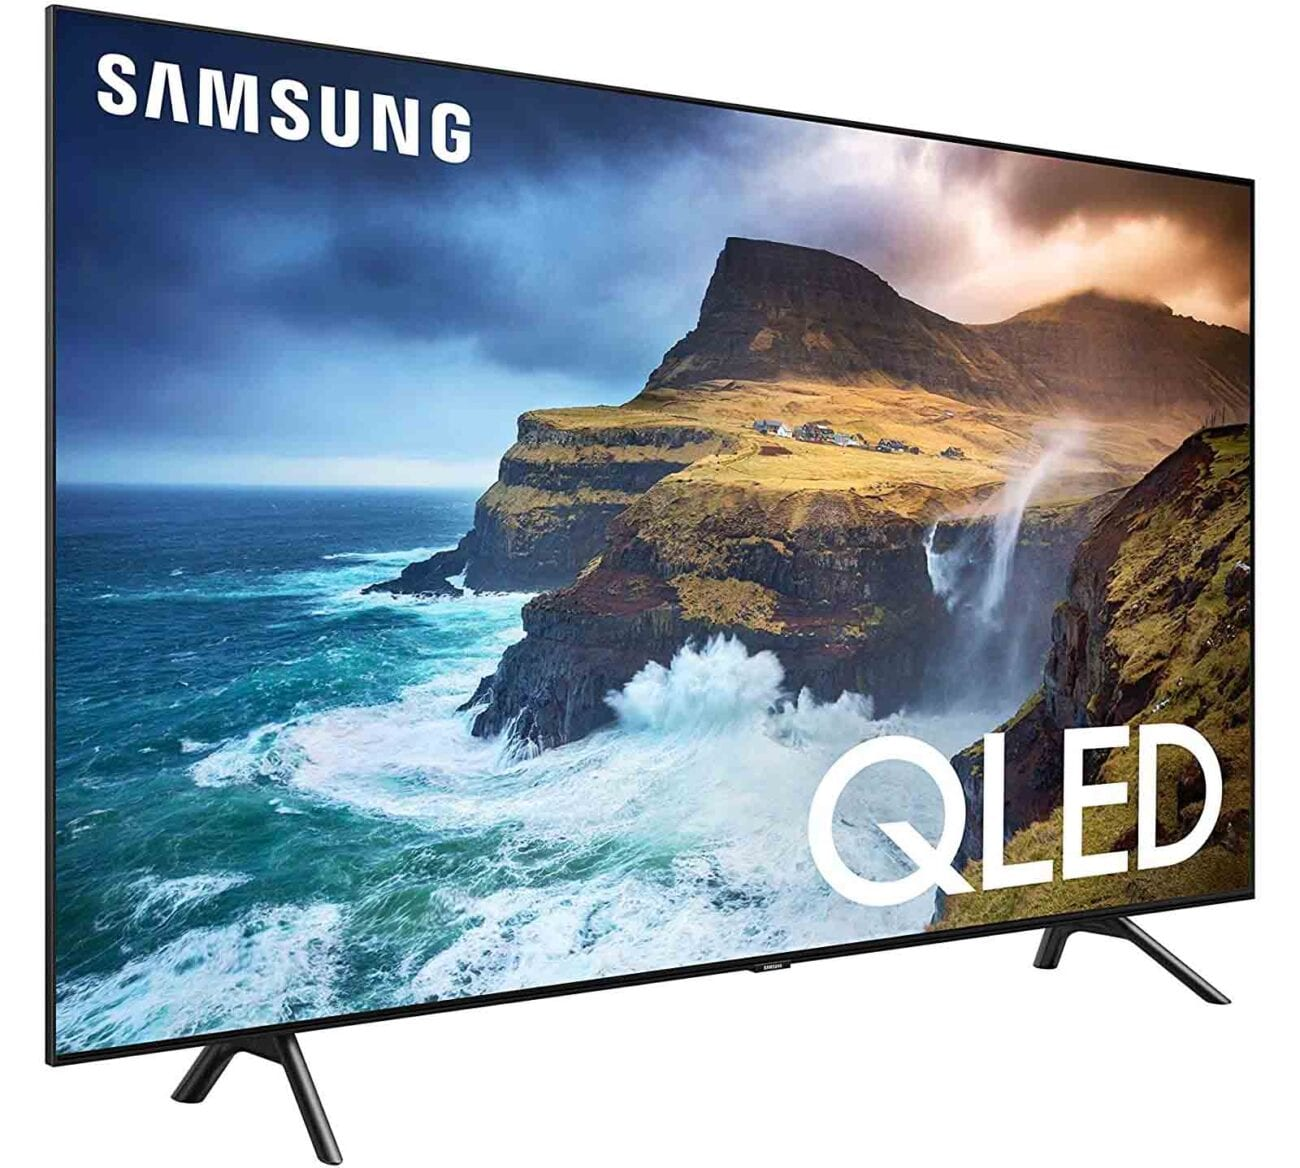 Looking to catch up on all your favorite TV shows on a new HD screen? Peruse some of Samsung's new high-tech TVs currently for sale.